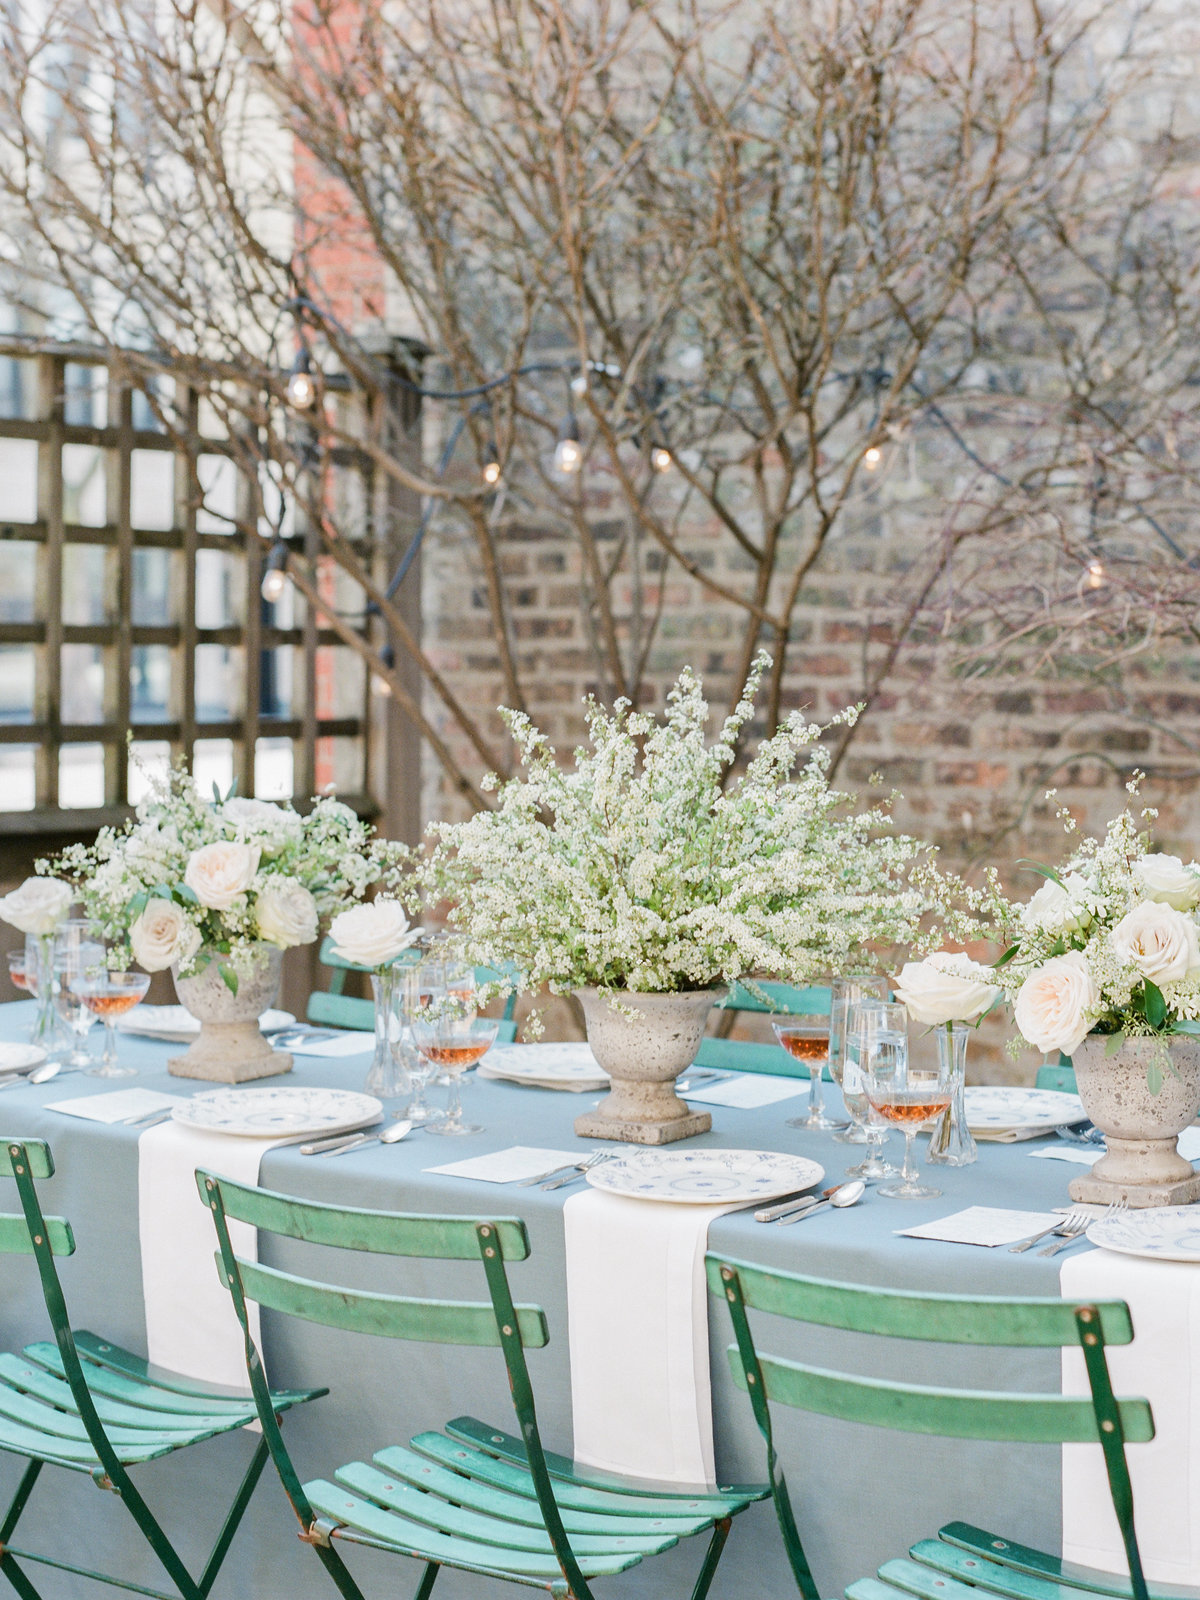 wedding table set with french blue tablecloth and green chairs